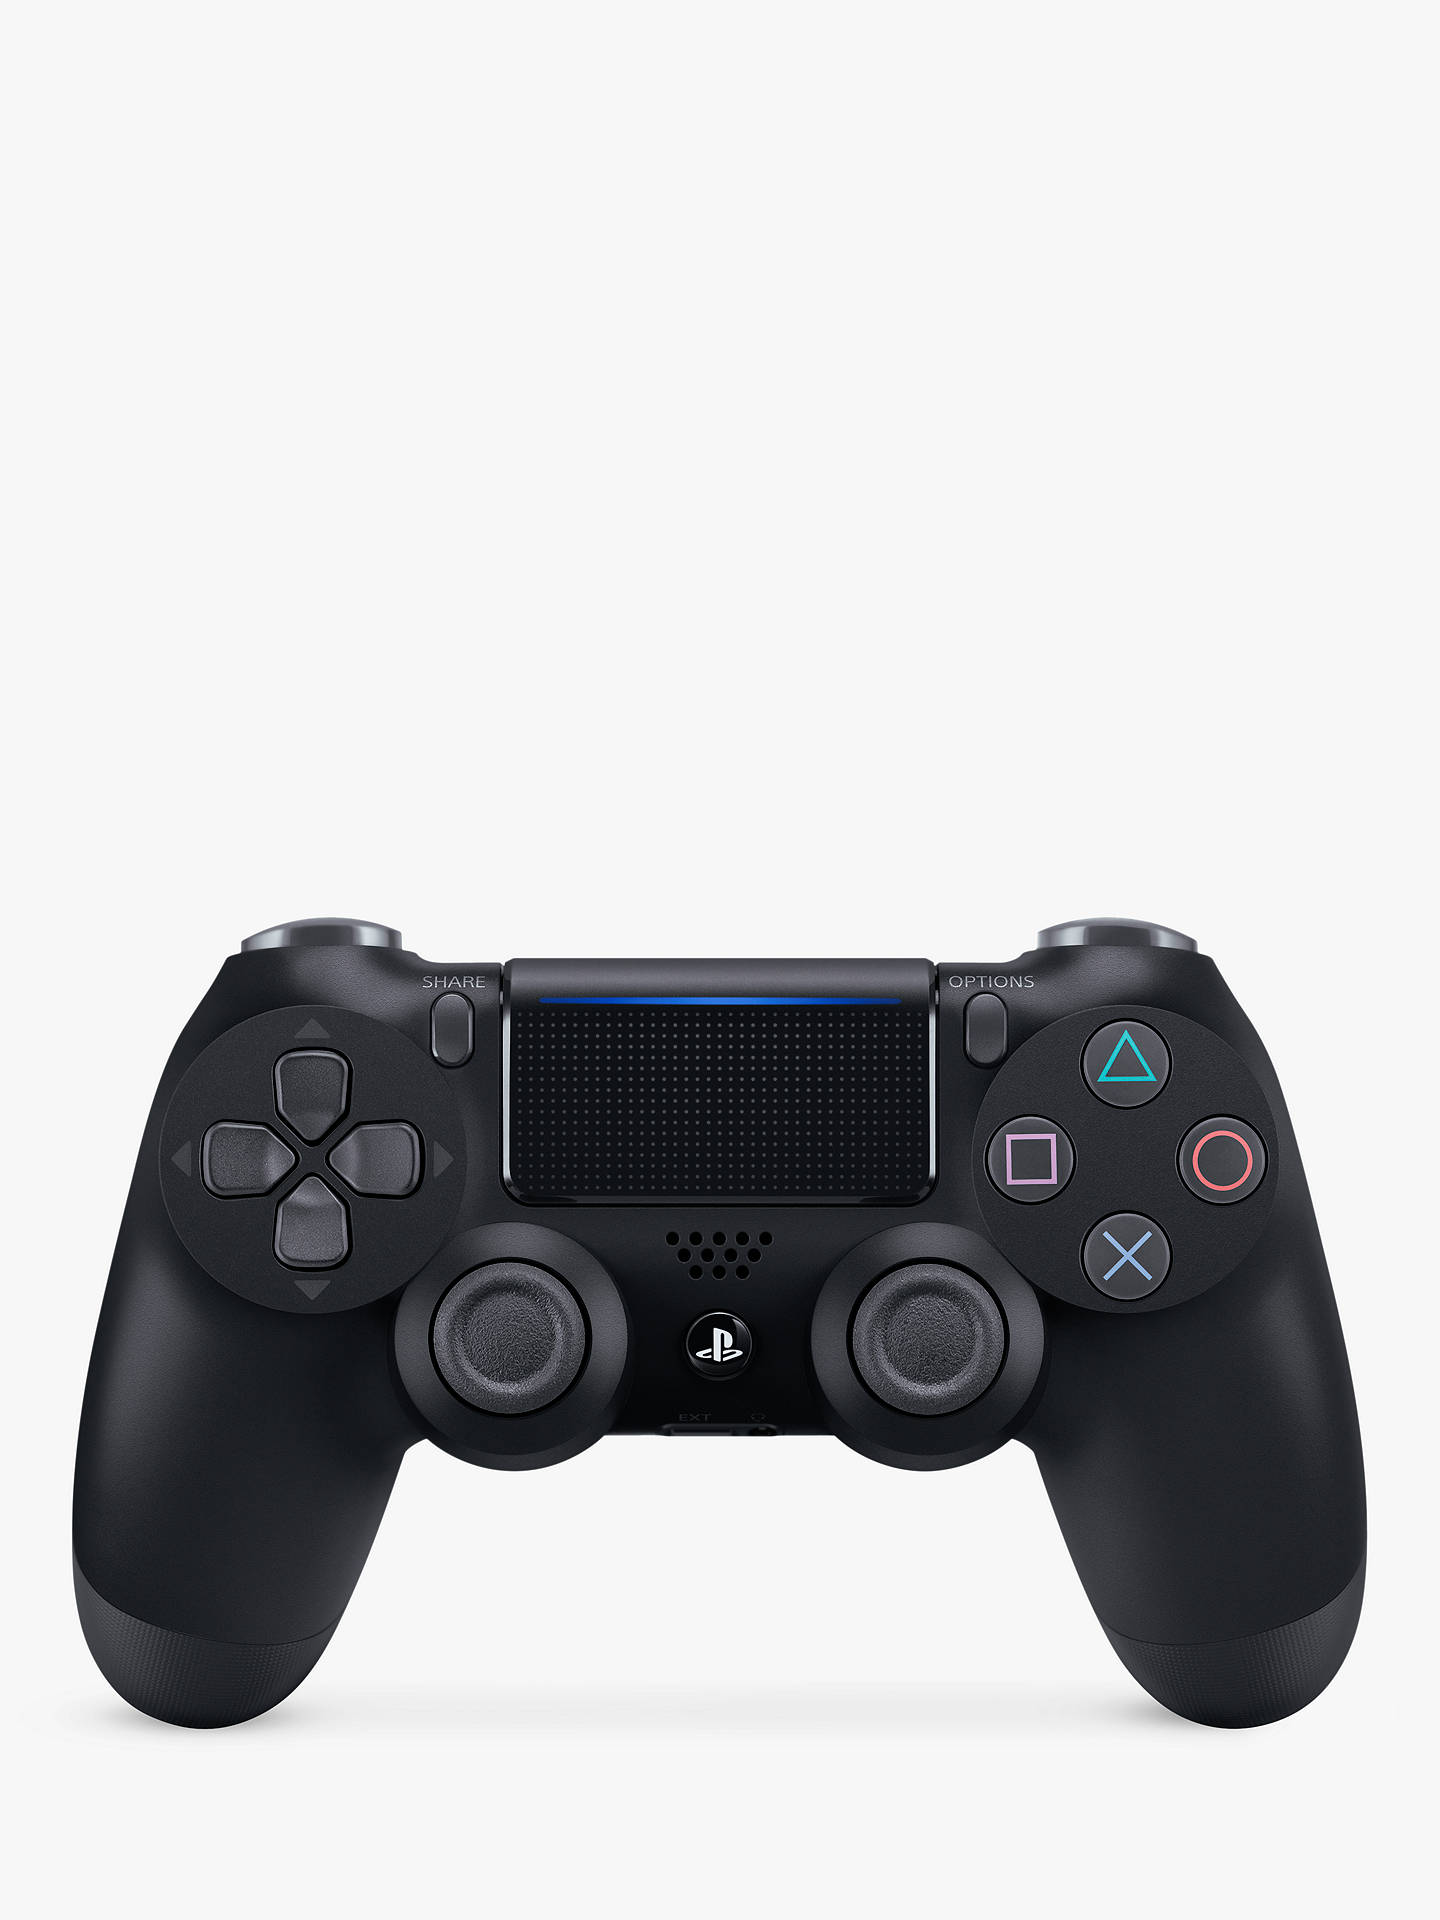 Buy Sony PlayStation 4 Slim Console with DUALSHOCK 4 Controller, 500GB, Jet Black and FIFA 19 Bundle Online at johnlewis.com